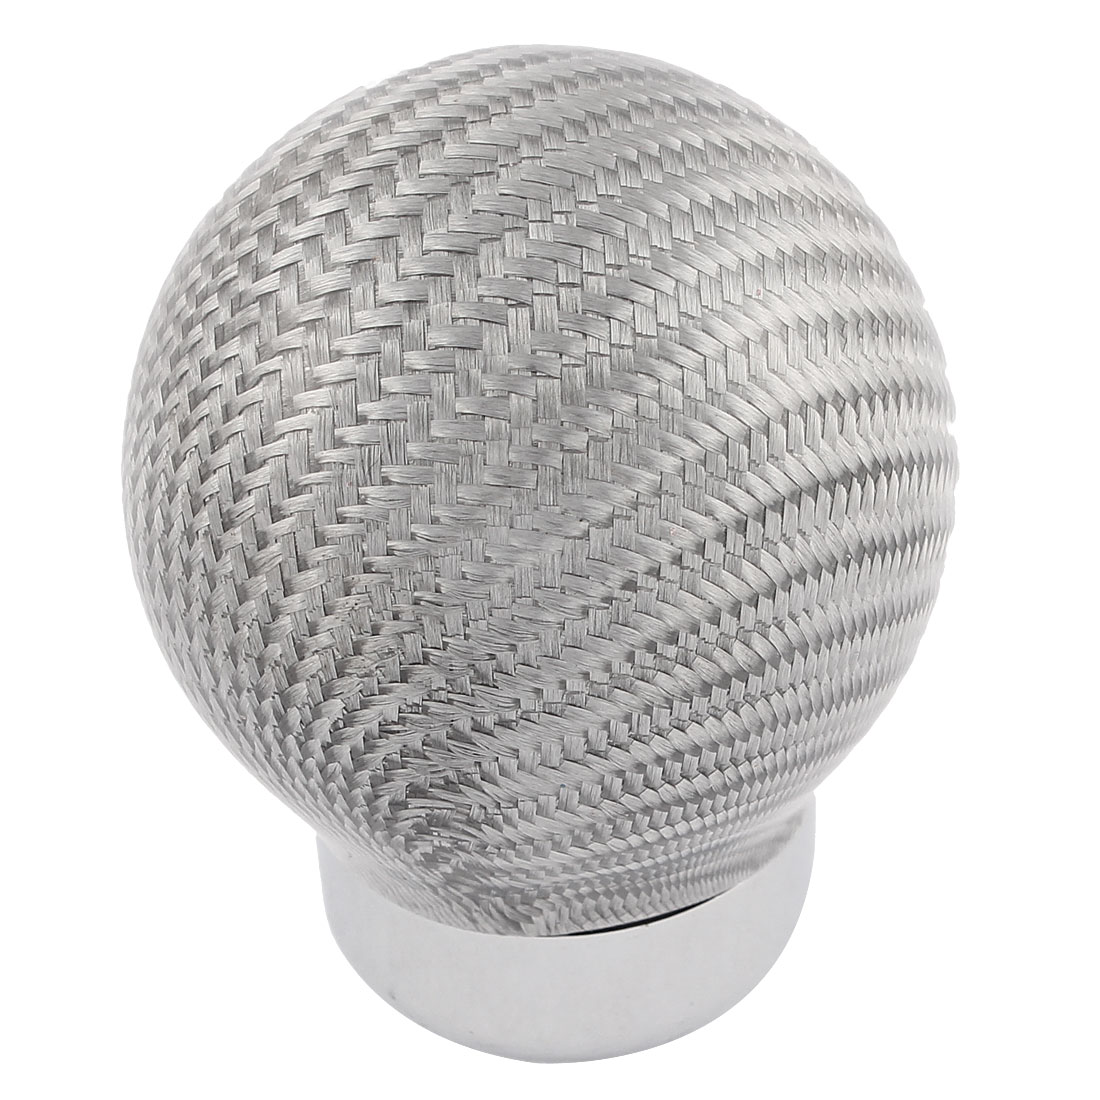 Silver Tone Carbon Fiber Round Ball Car Manual Gear Shift Shifter Knob w Adapters